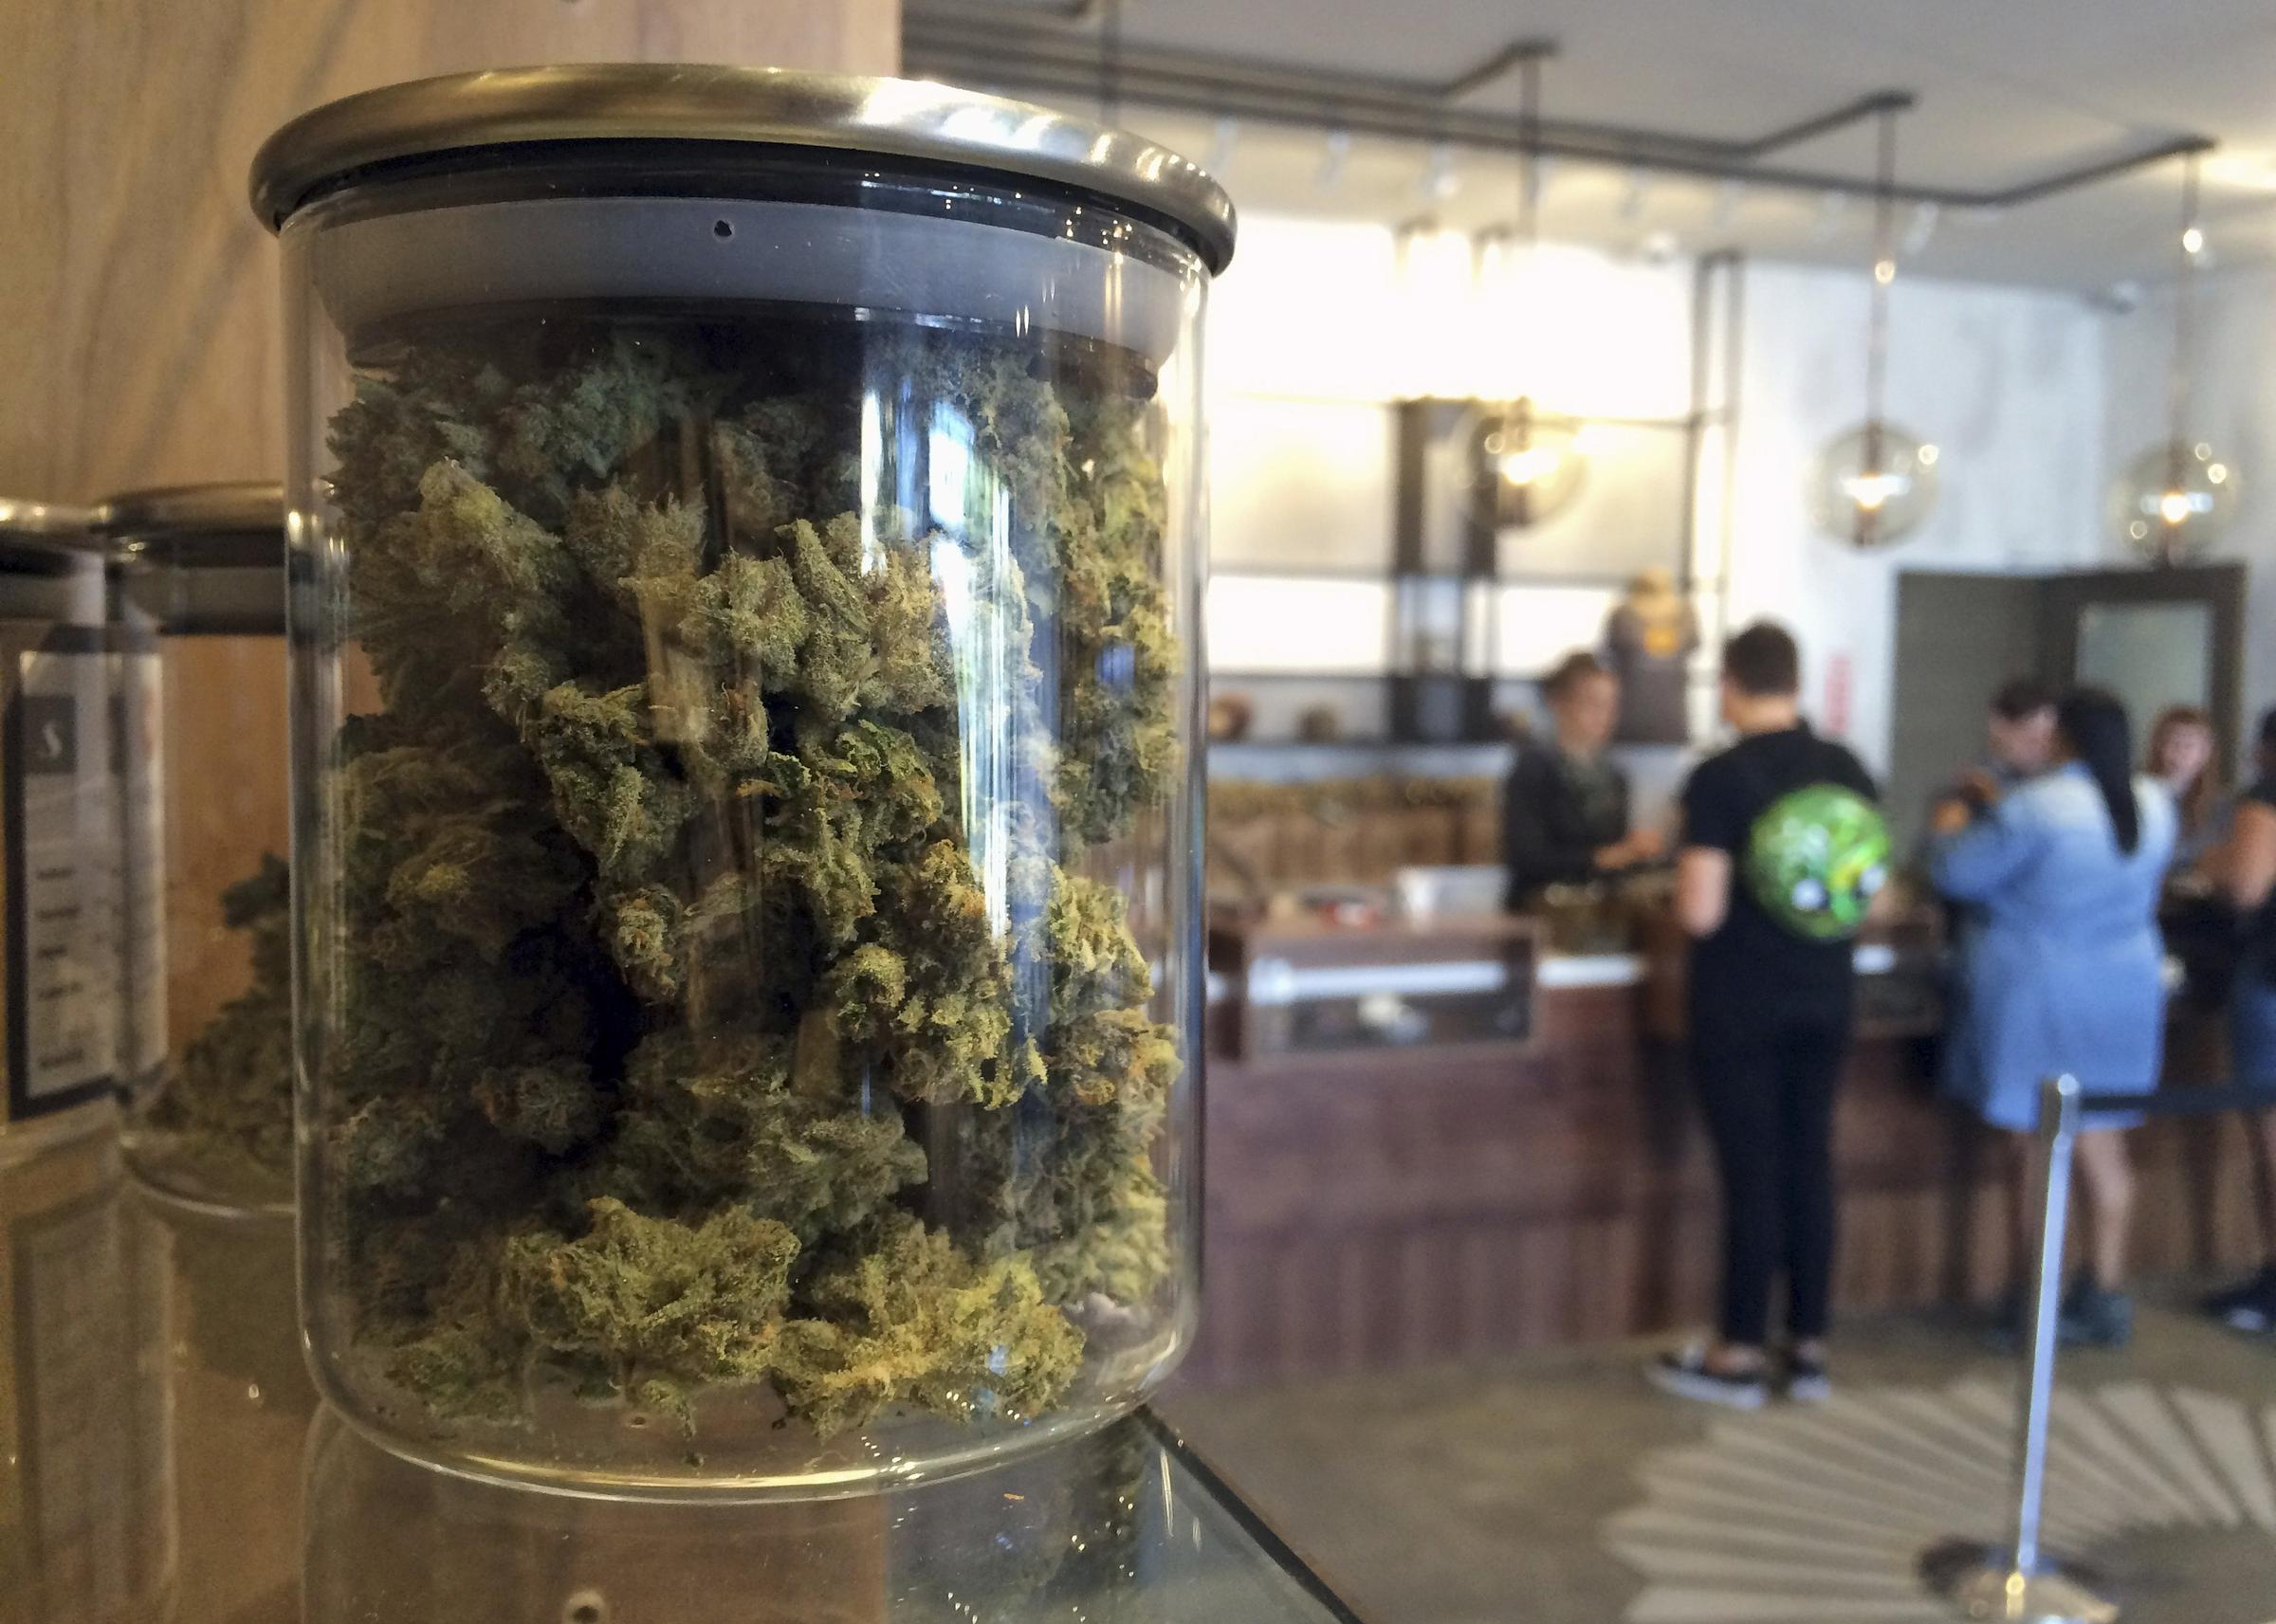 New rules could change how medical marijuana is regulated in NYS